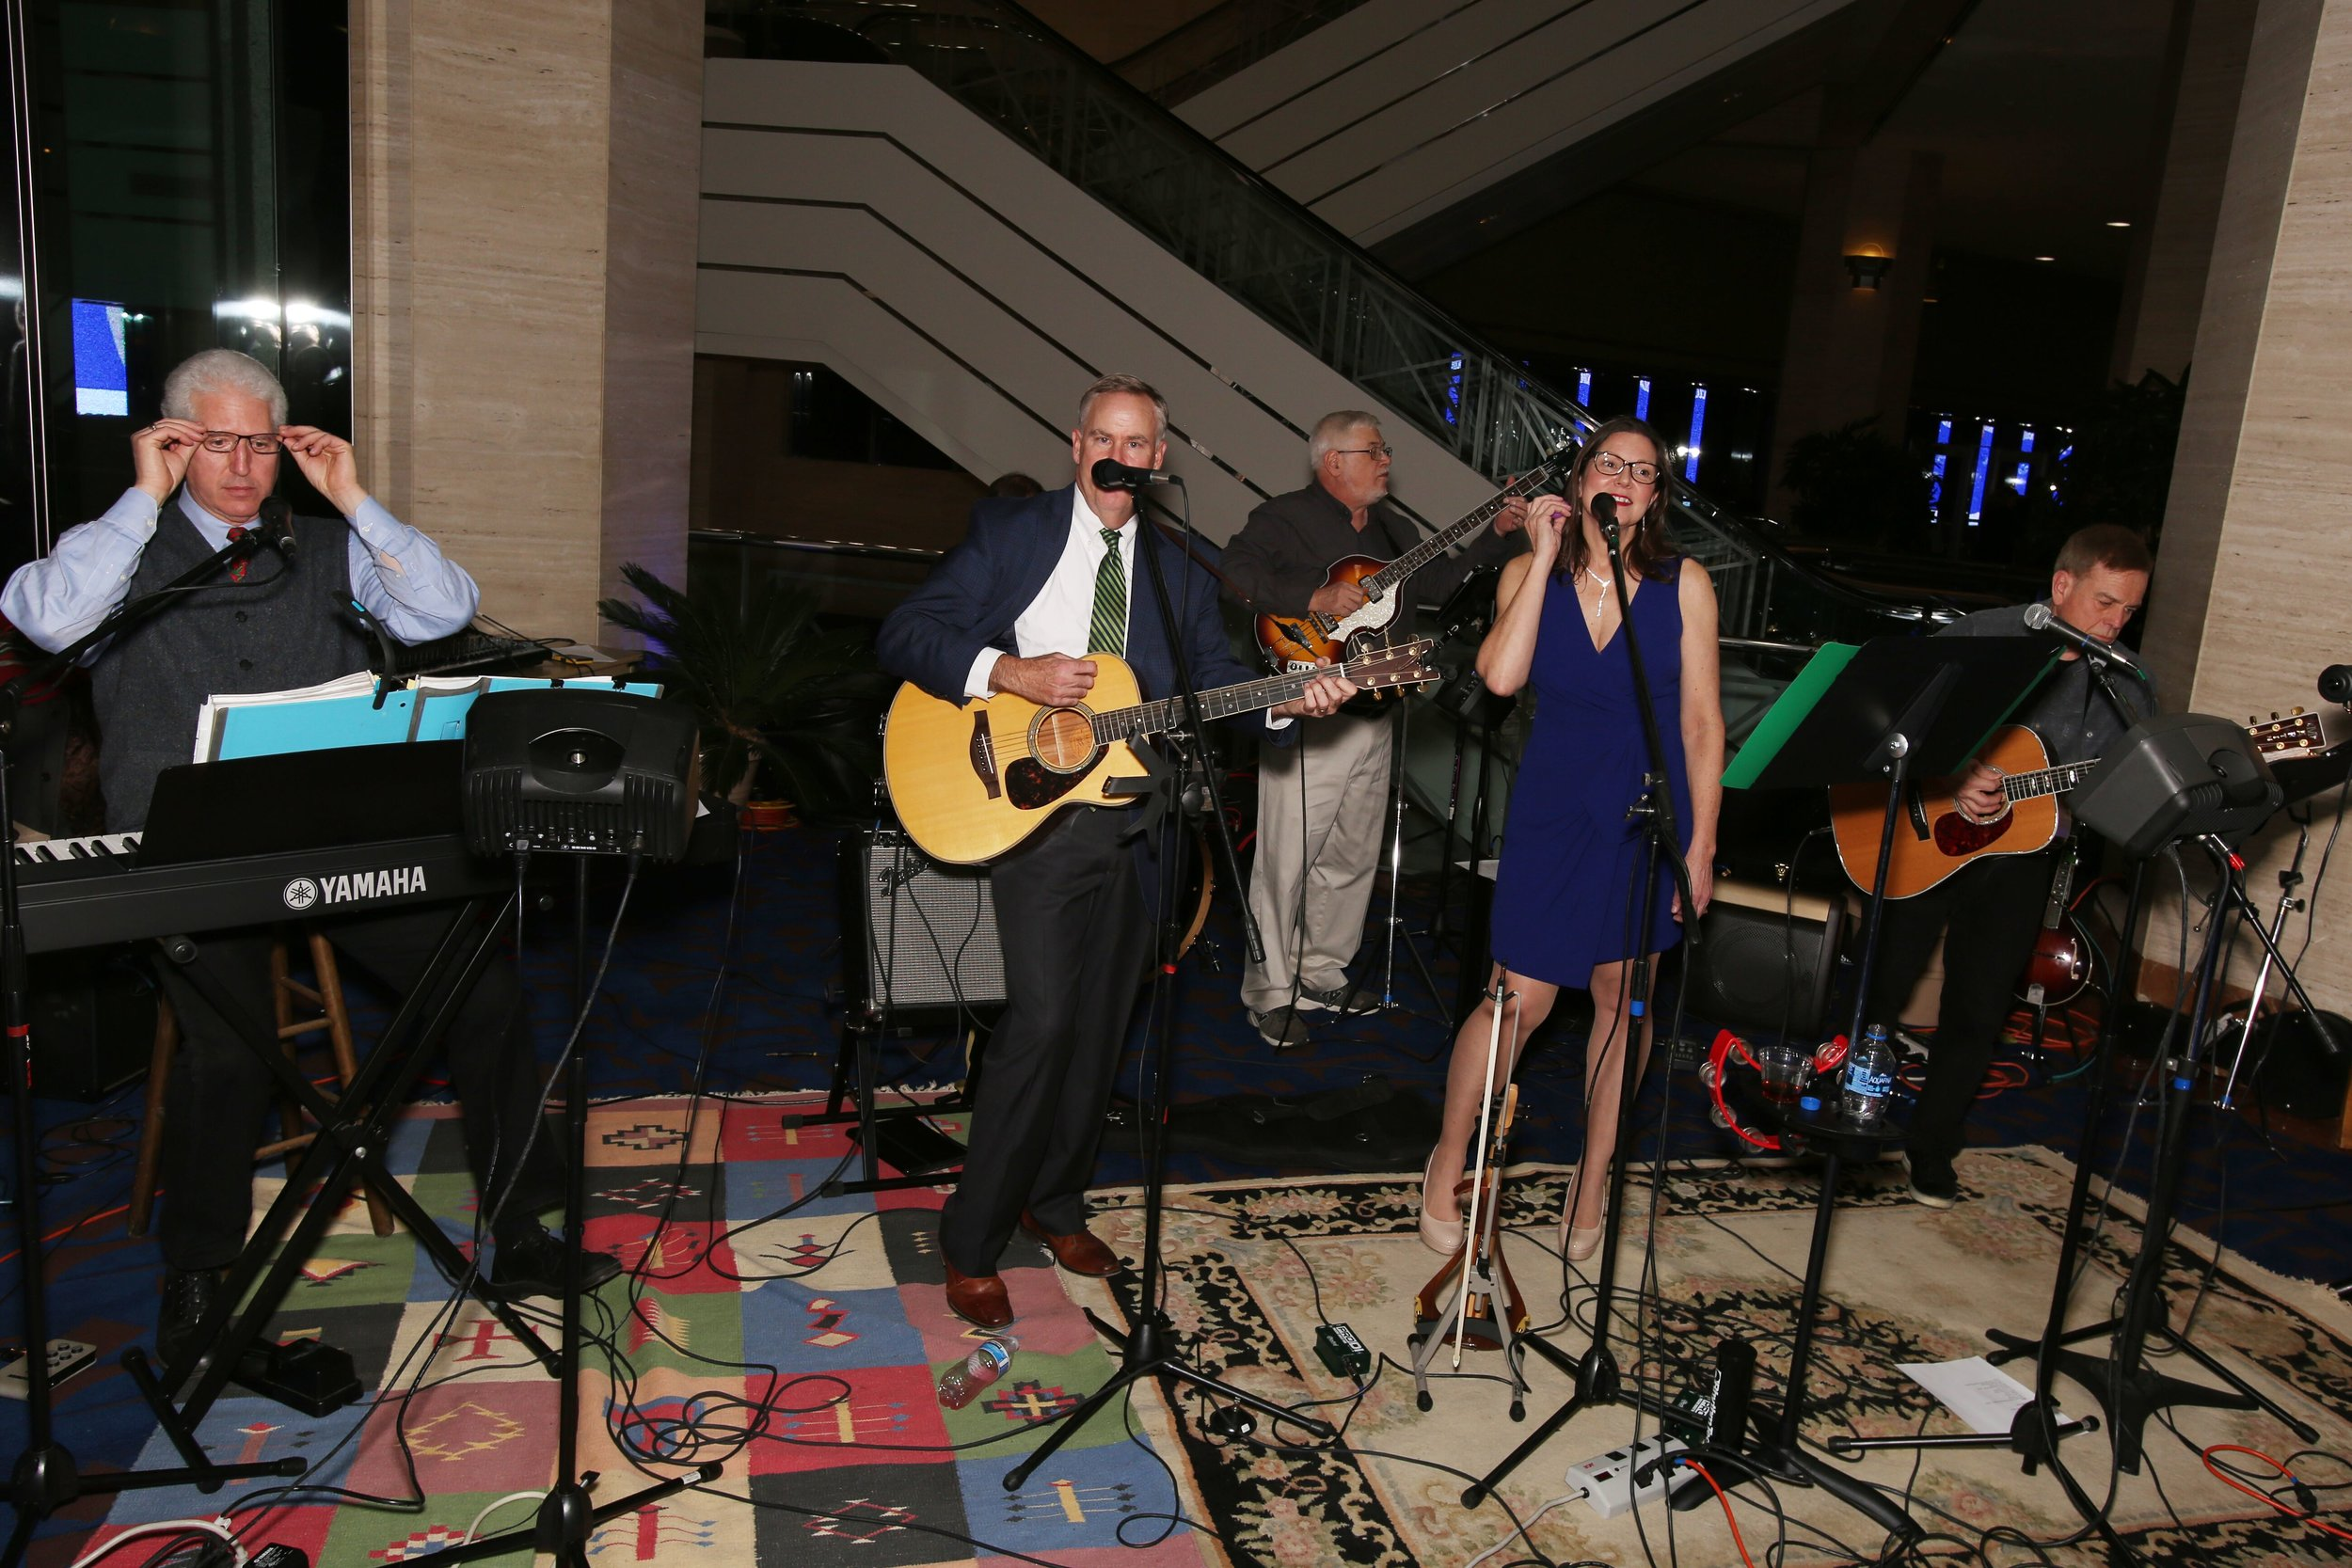 Photo - Christine's Christmas Concert Event - The Klatt Brother's Band entertains during receptions.